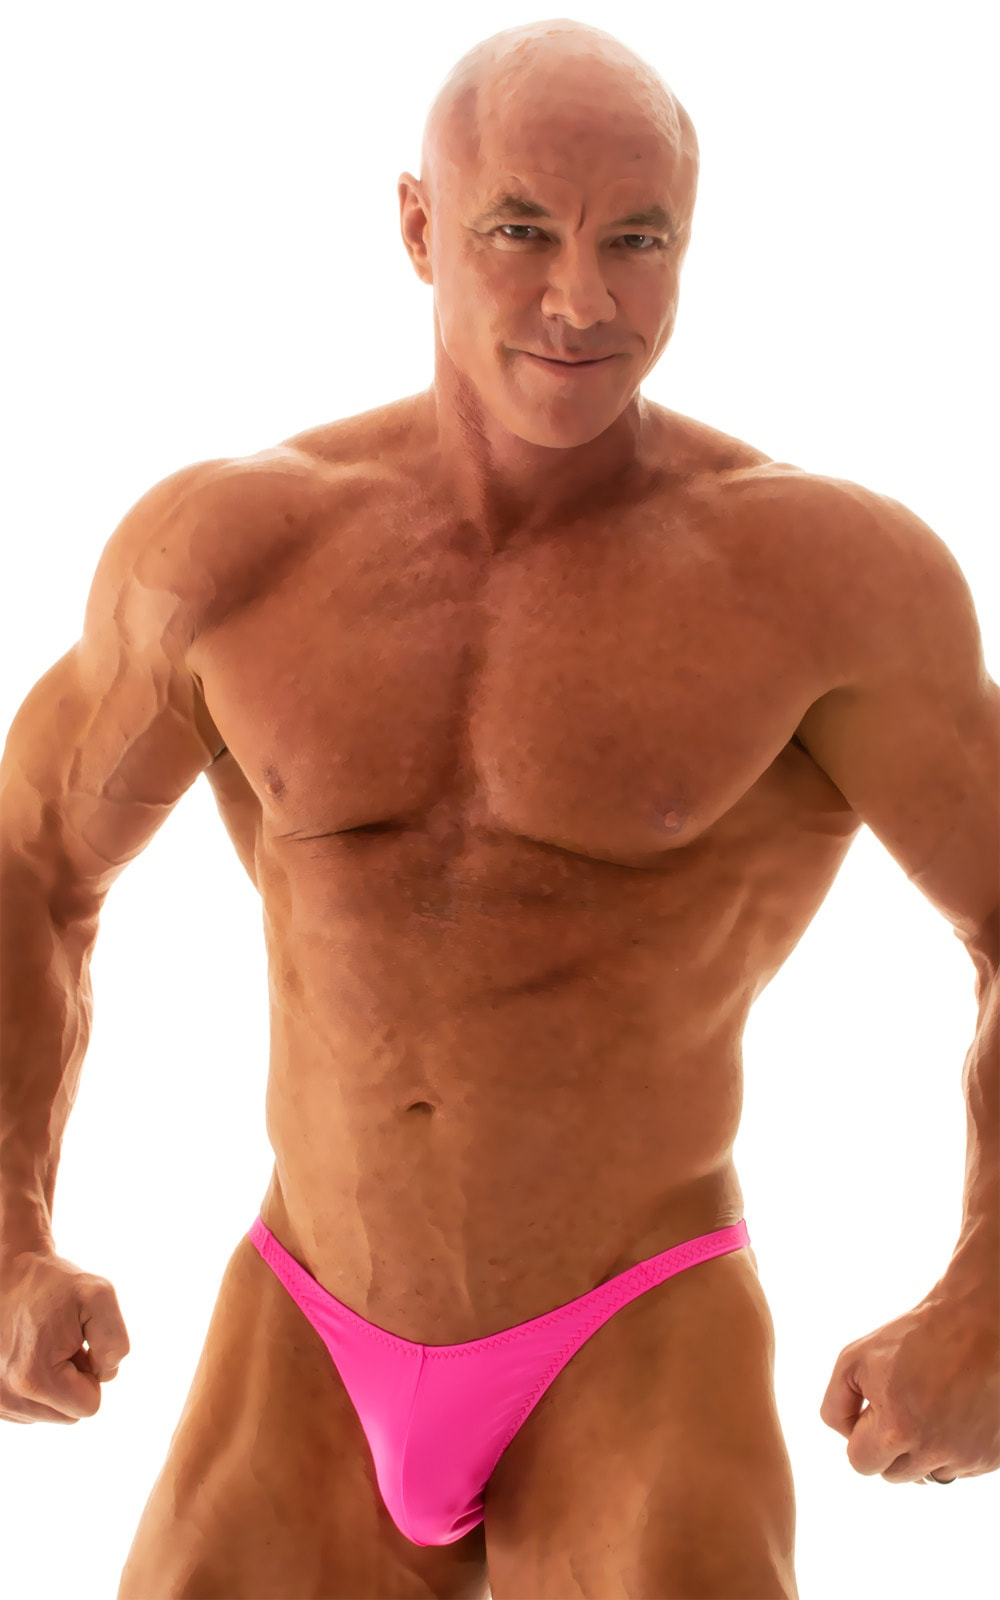 Fitted Pouch - Puckered Back - Posing Suit in Wet Look Hot Pink 1